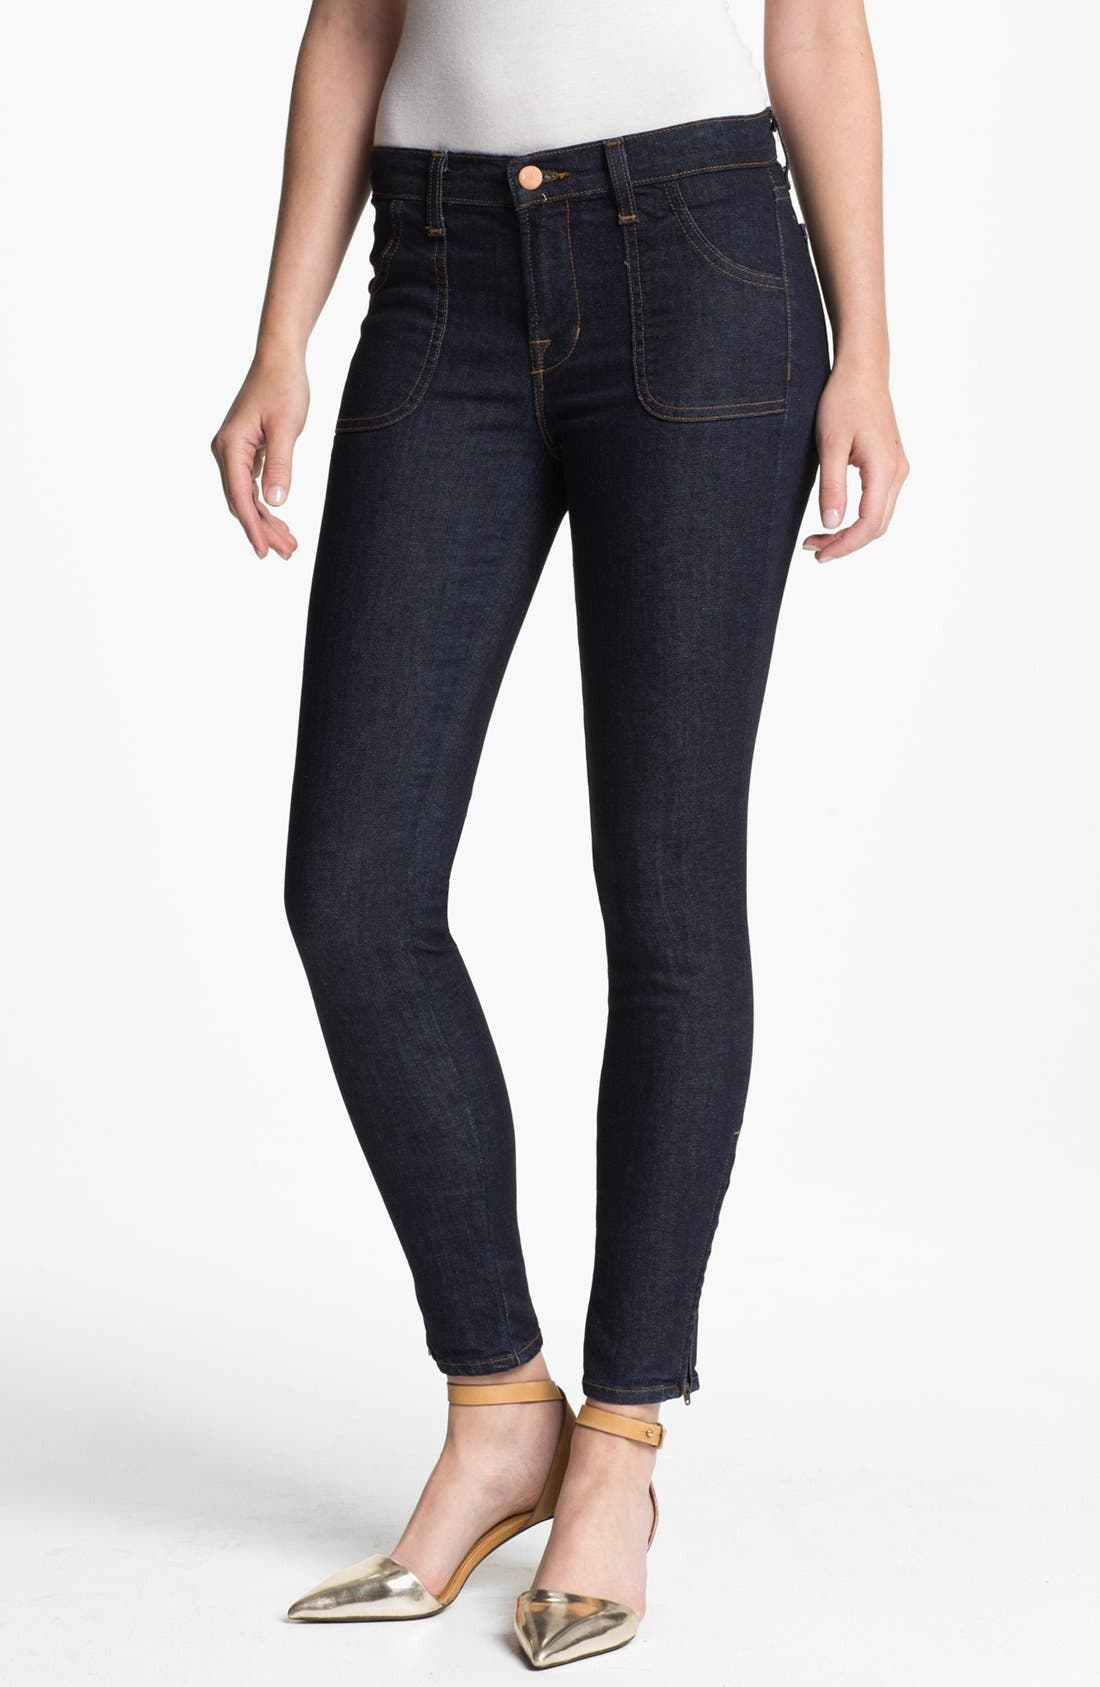 Alternate Image 1 Selected - J Brand 'Retro' Skinny Ankle Zip Jeans (Clean Rinse)